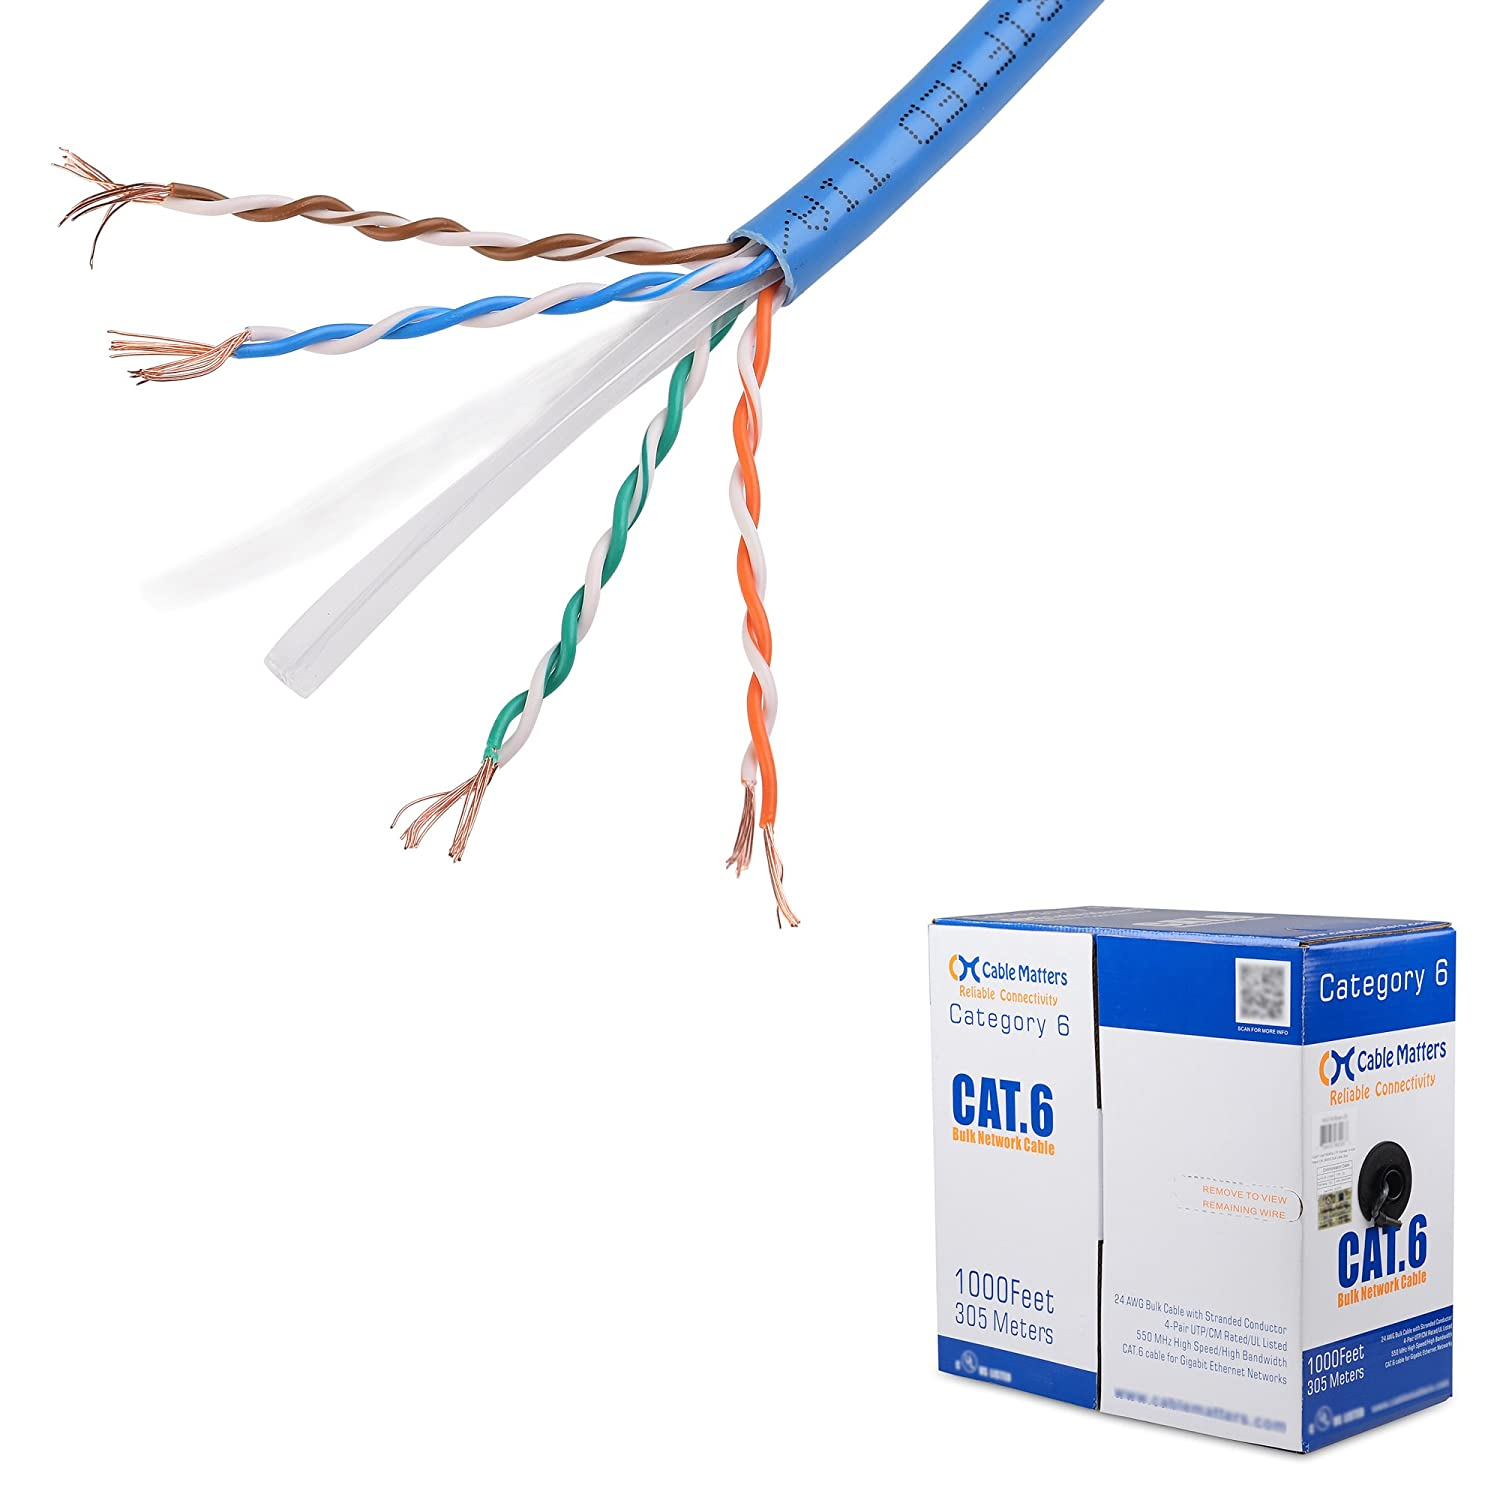 Ul Listed Cable Matters Stranded Bare Copper Cat 6 Cat6 Gigabit Ethernet Wiring Bulk 1000 Feet In Blue Computers Accessories